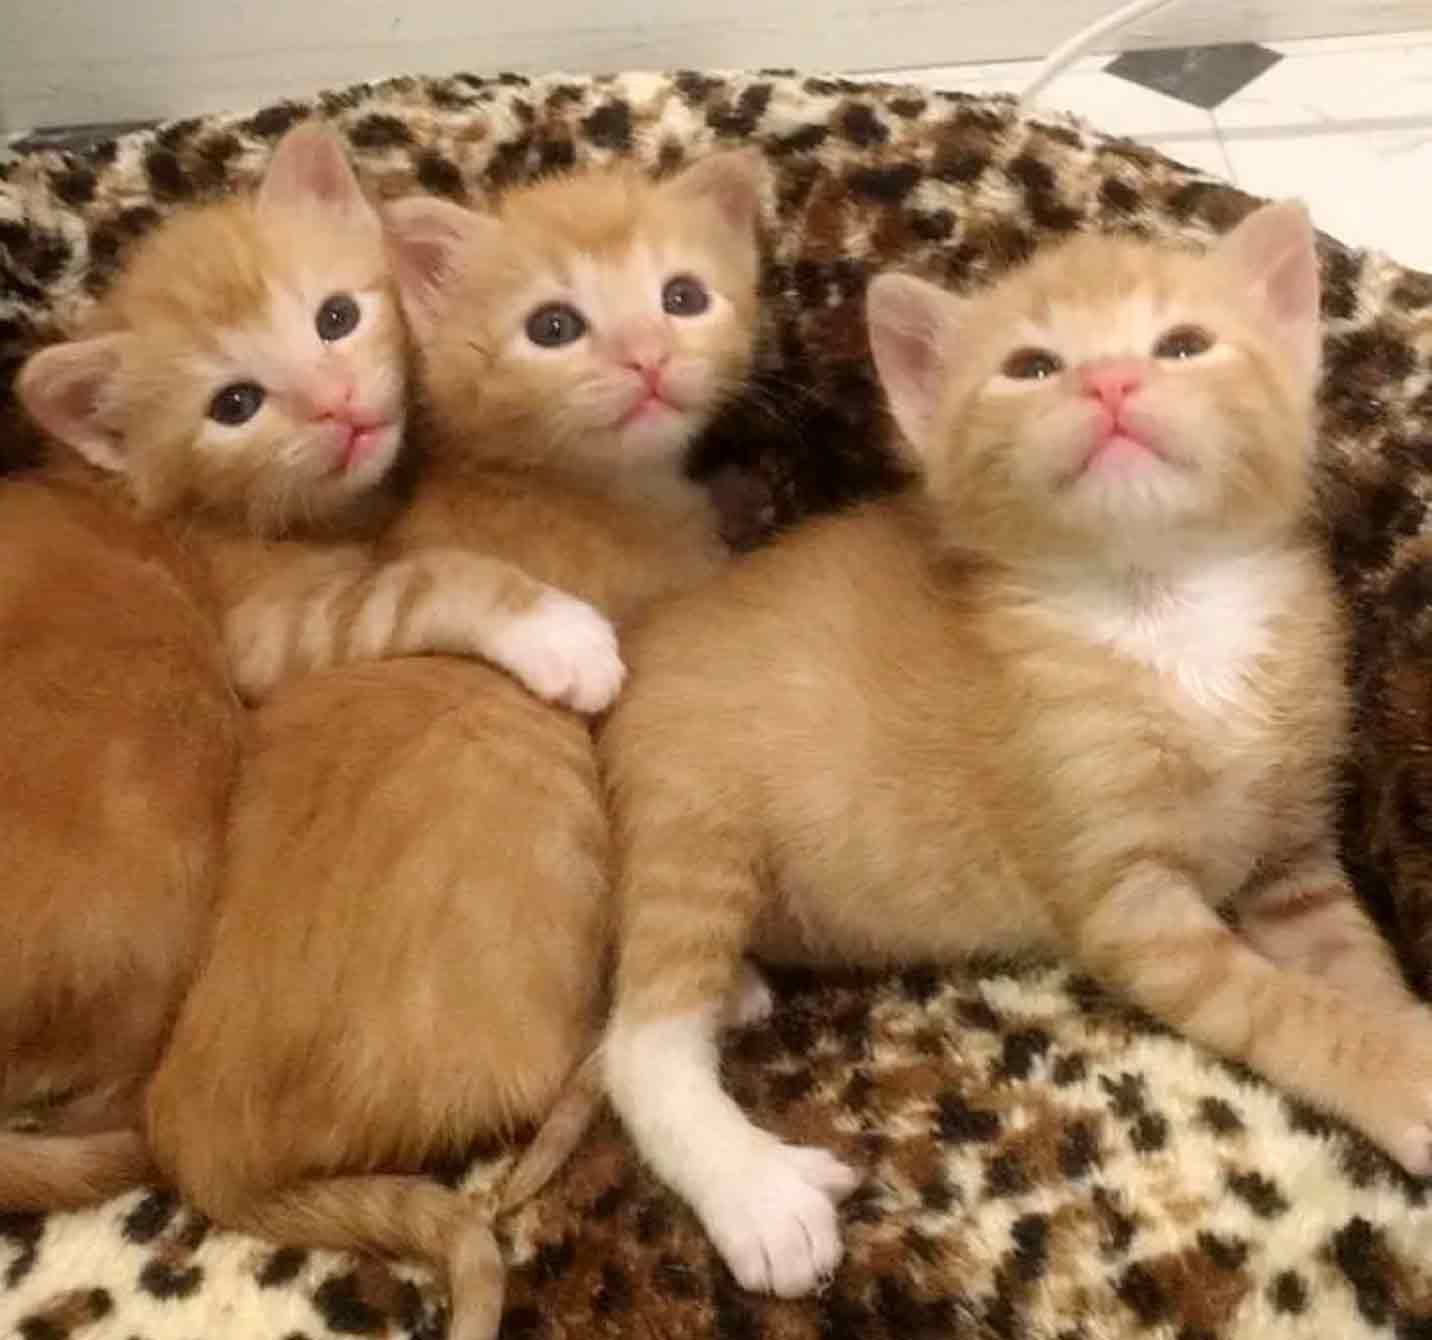 5 Orphaned Ginger Kittens Get Help Just In Time Cats And Kittens Kittens Ginger Kitten